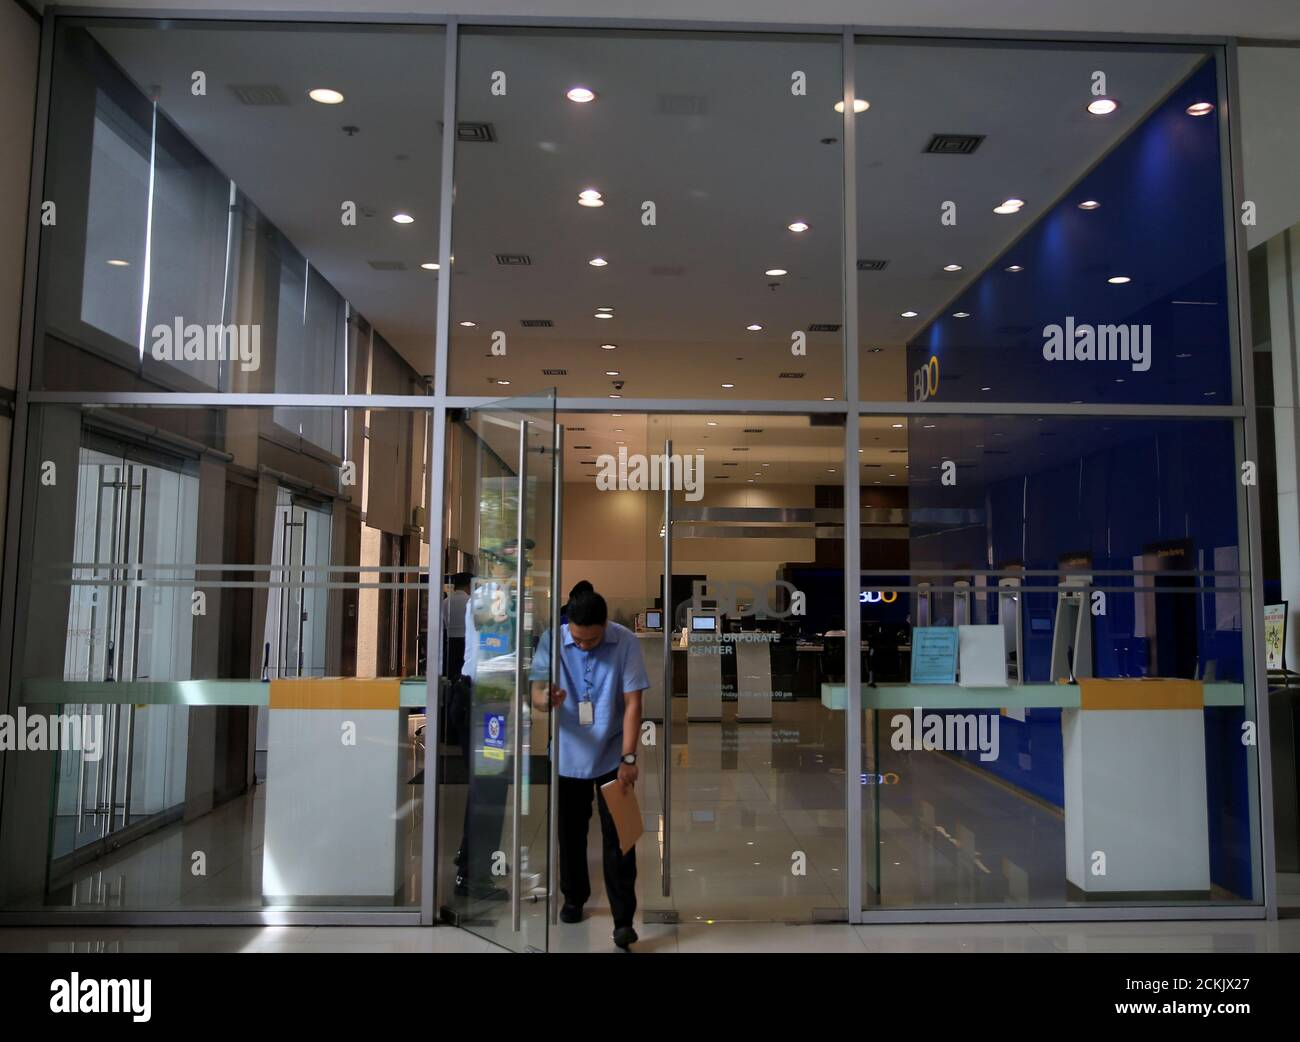 A Man Walk Out Of The Philippines Top Lender Banco De Oro Bdo Unibank Inc After Doing A Transanction At A Main Building In Makati City Metro Manila Philippines June 23 2016